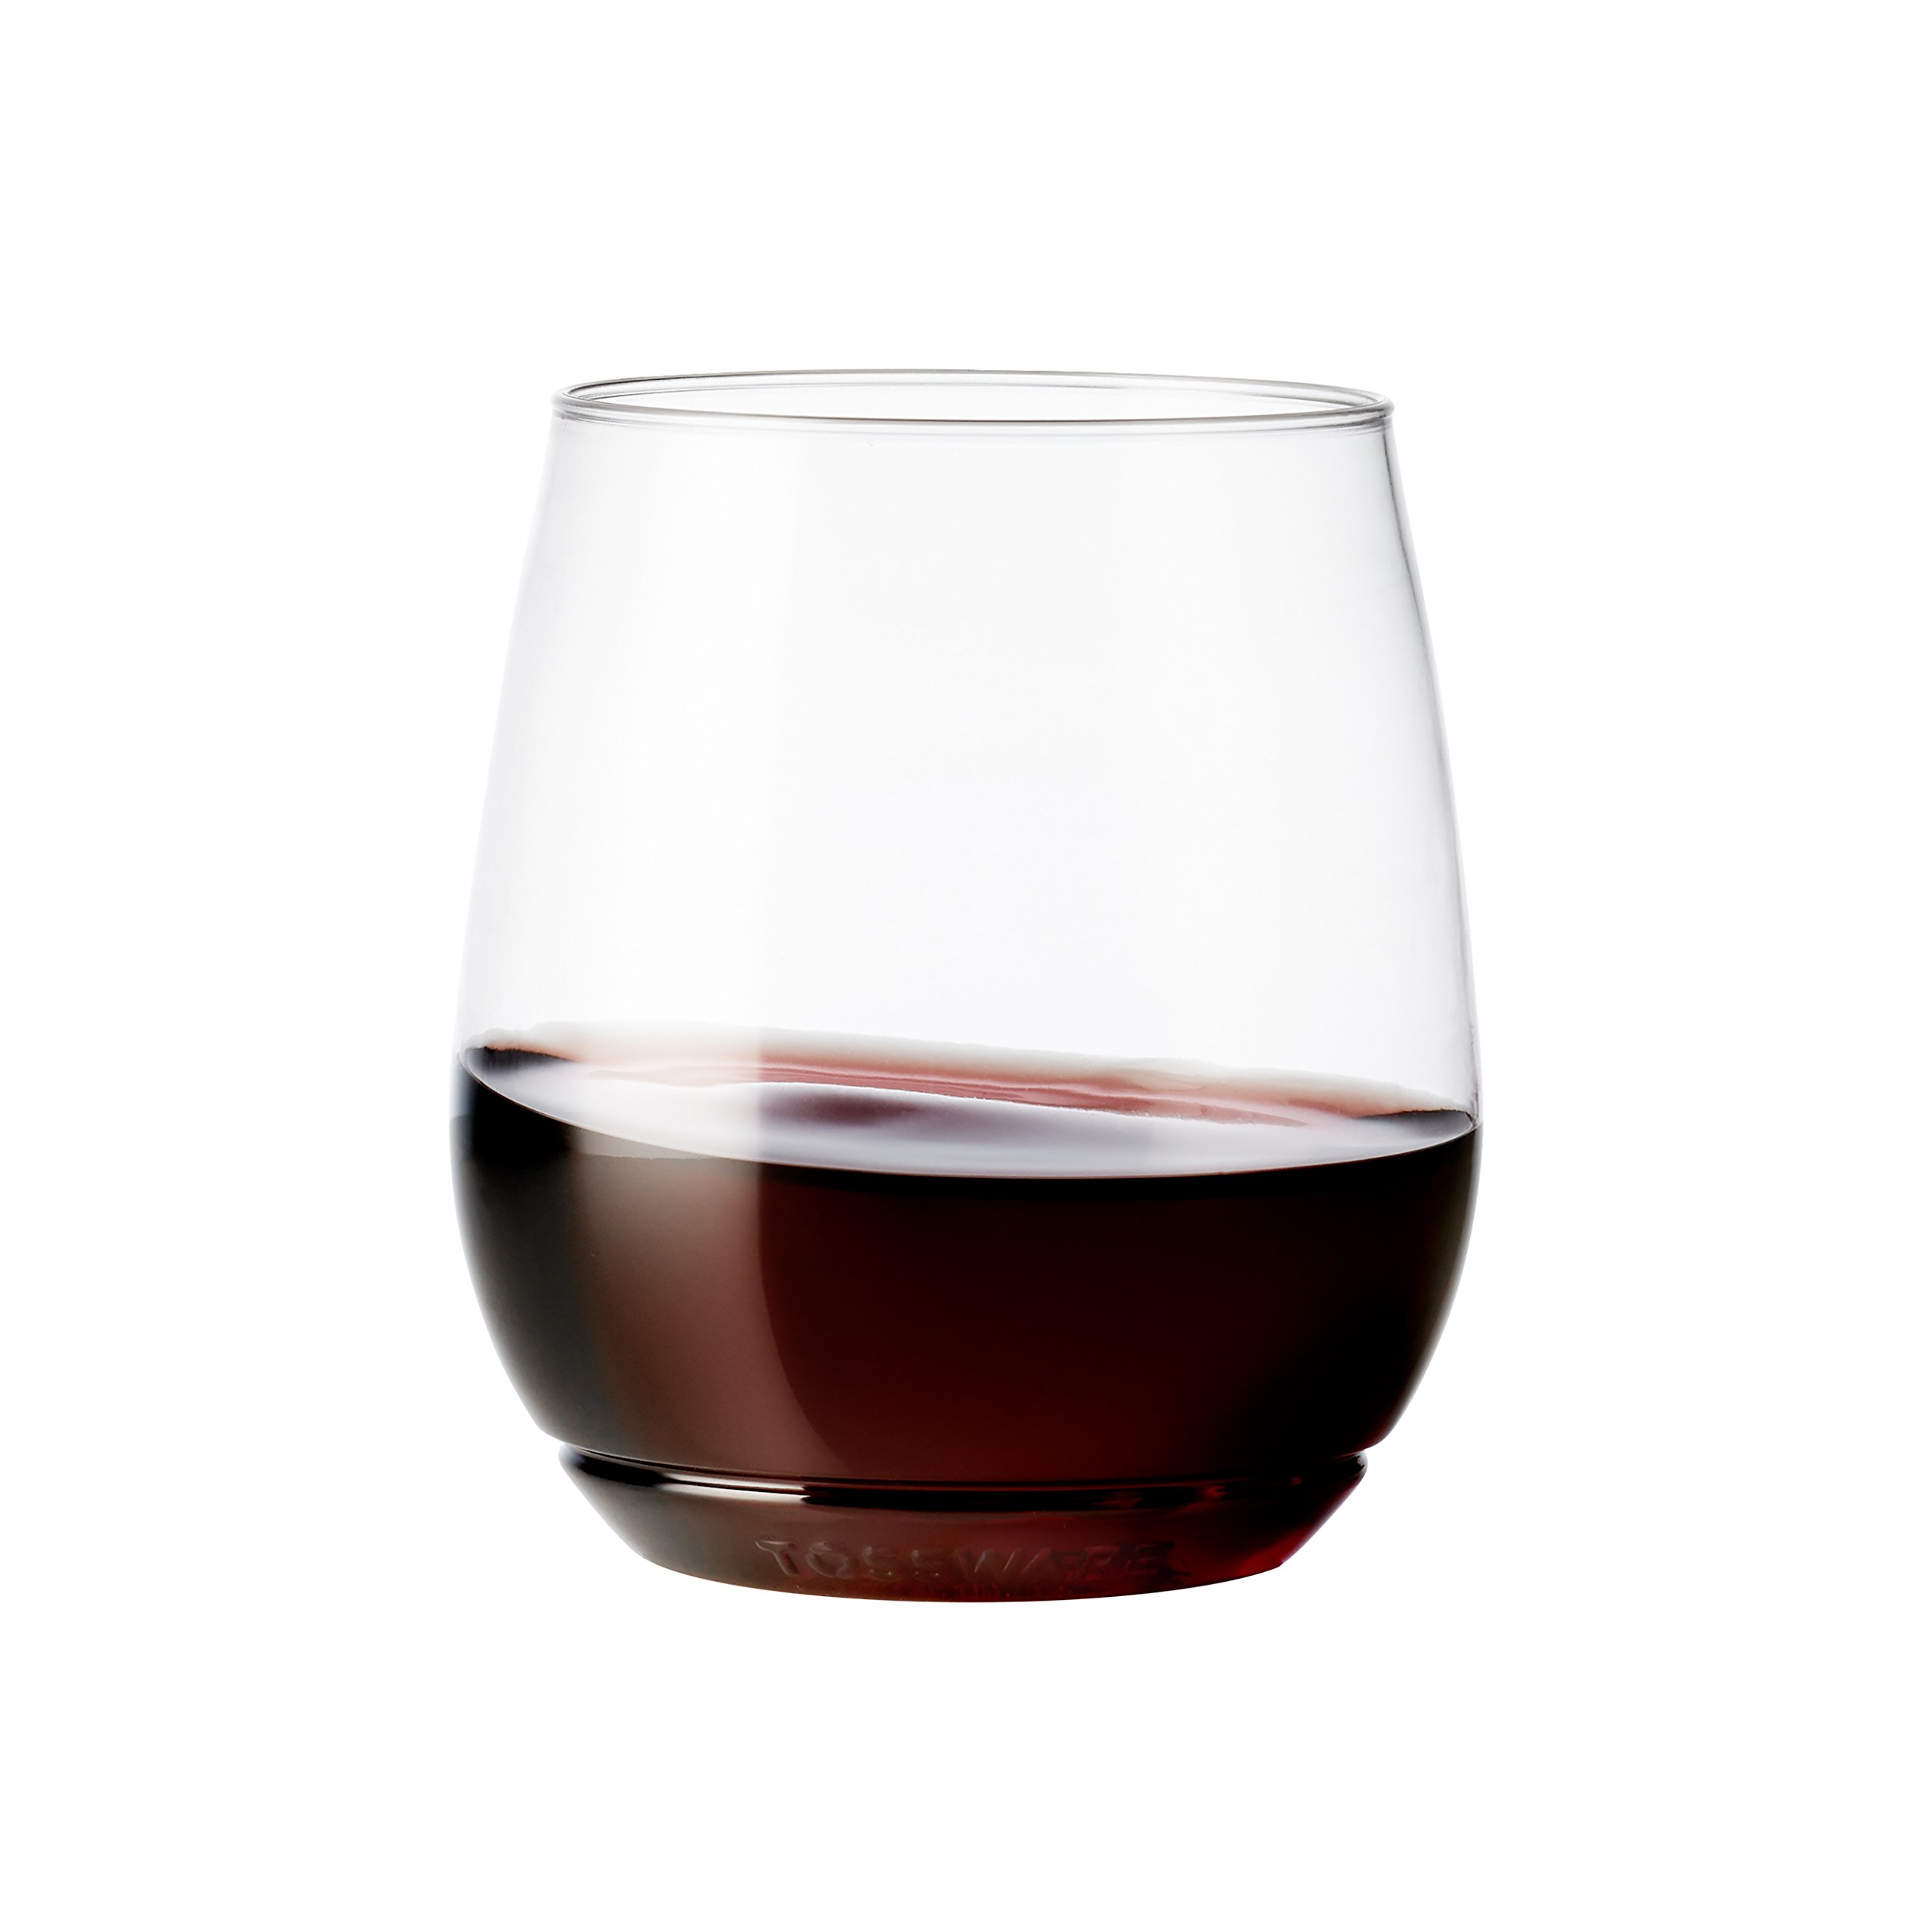 TOSSWARE 14oz Vino - recyclable wine plastic cup - SET OF 12 - stemless, shatterproof and BPA-free wine glasses by TOSSWARE